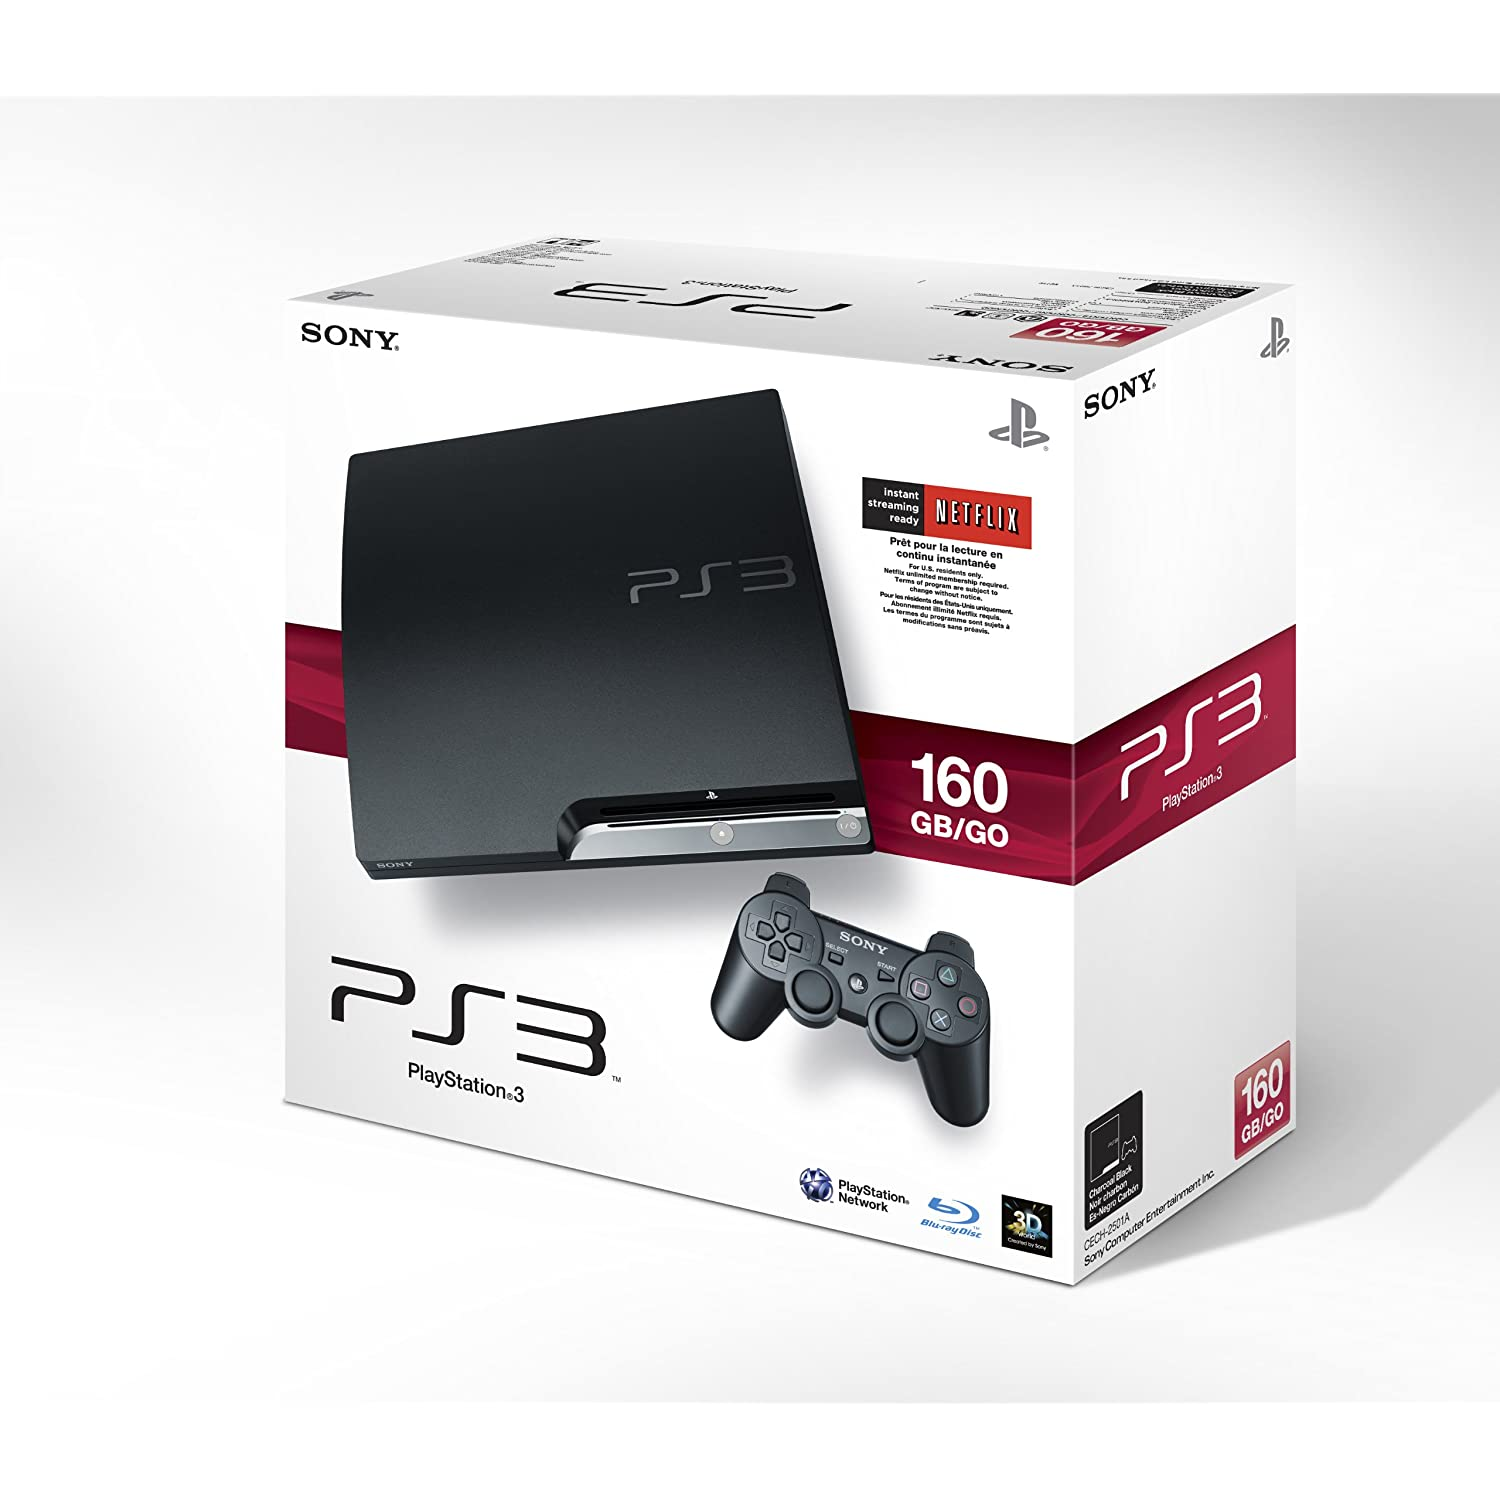 PS3 Slim (160GB)